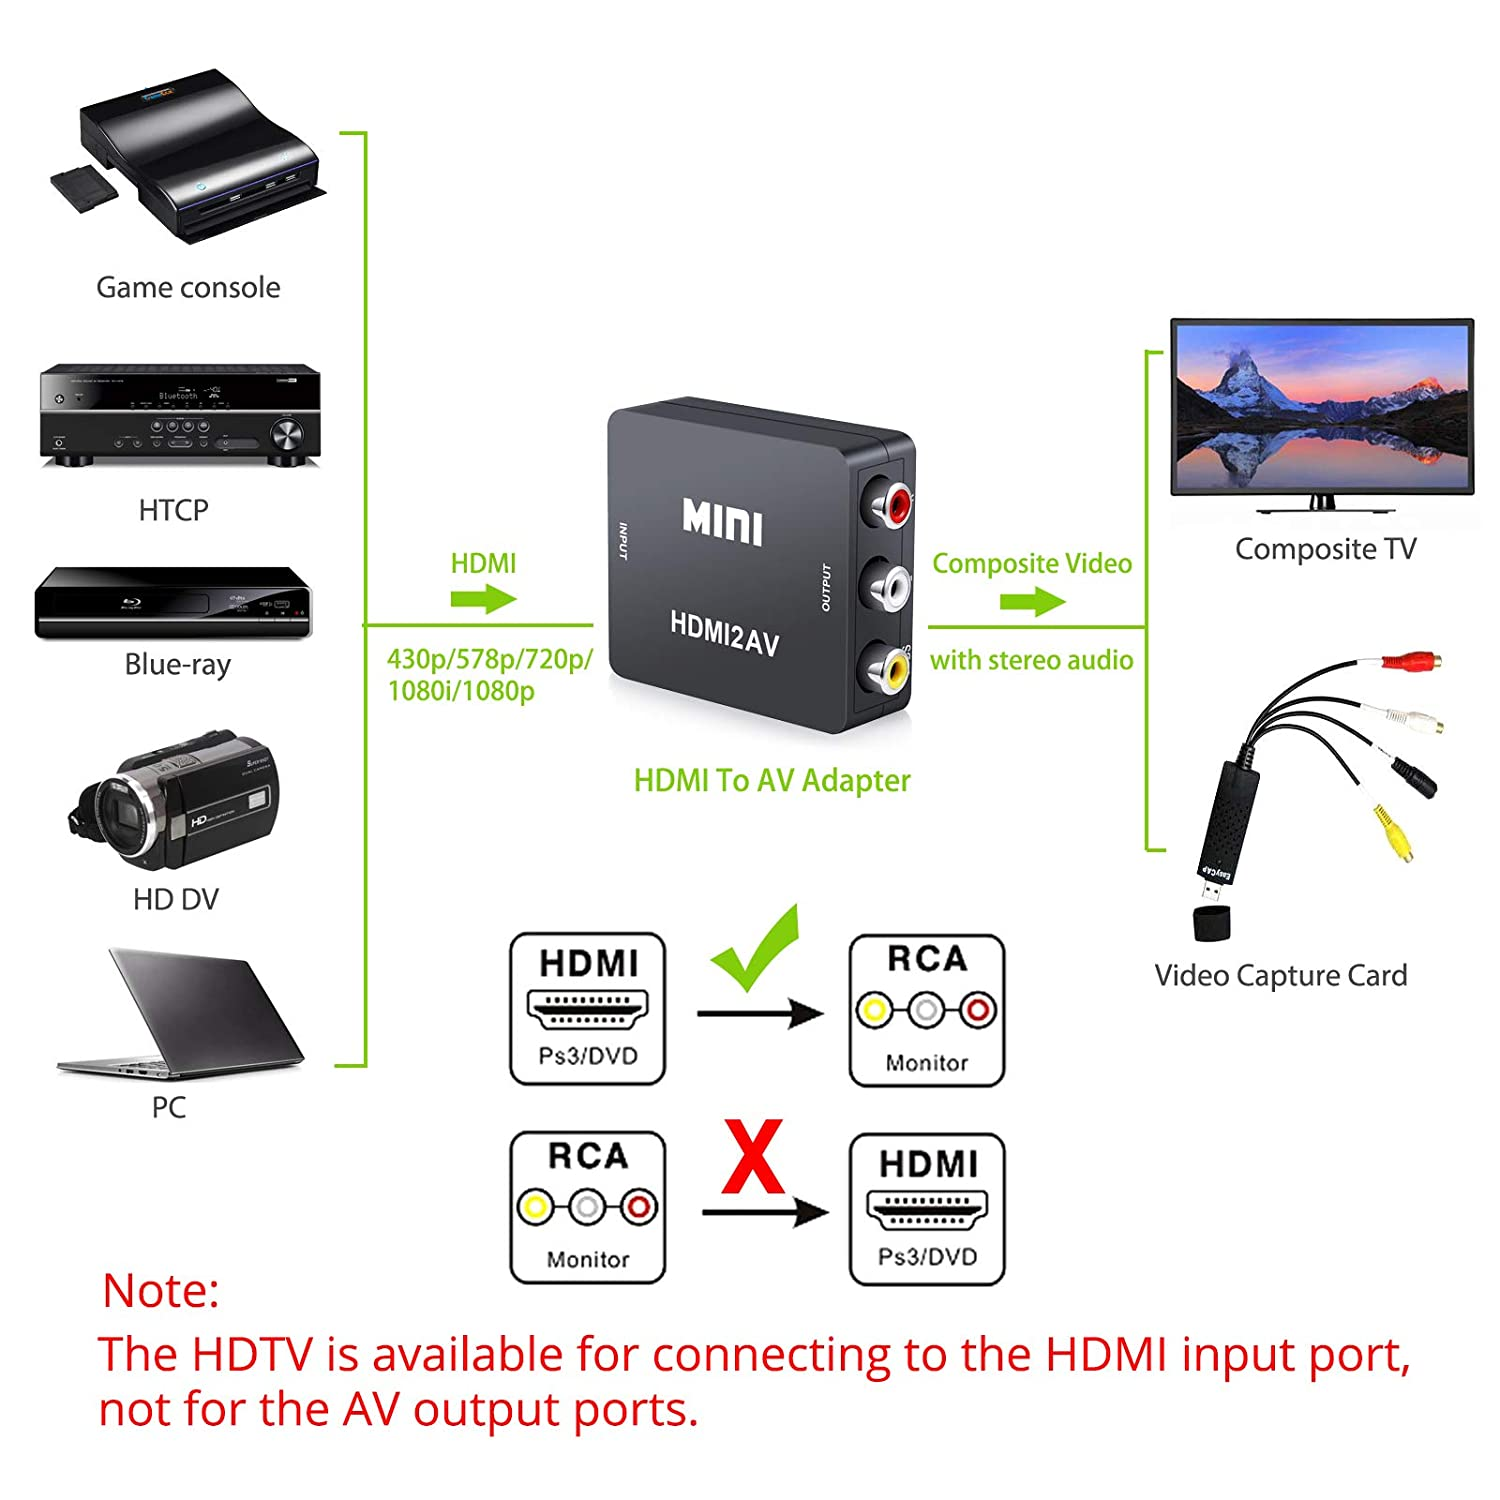 LiNKFOR AV to HDMI Converter 1080P 3RCA Composite CVBS AV RCA R//L to HDMI Video Audio Converter Adapter Supporting PAL NTSC with USB Cable and AV Cable Compatible with PC Xbox PS4 PS3 TV STB VHS Etc